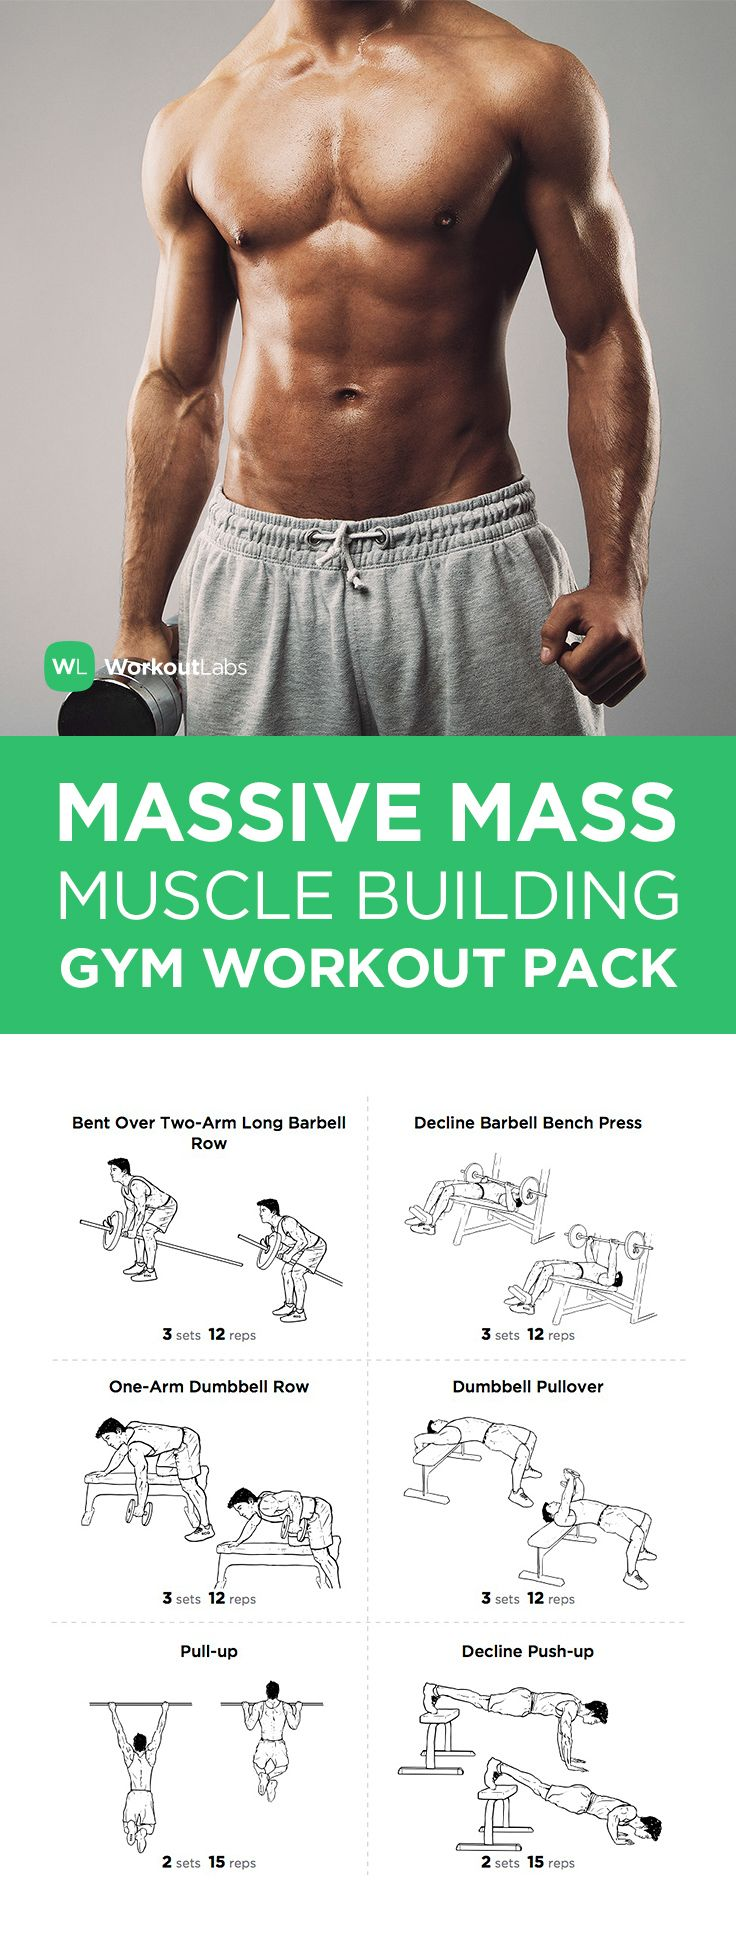 Visit WorkoutLabs.com/... to download this Massive Mass Muscle Building Gym Workout Pack for Men More